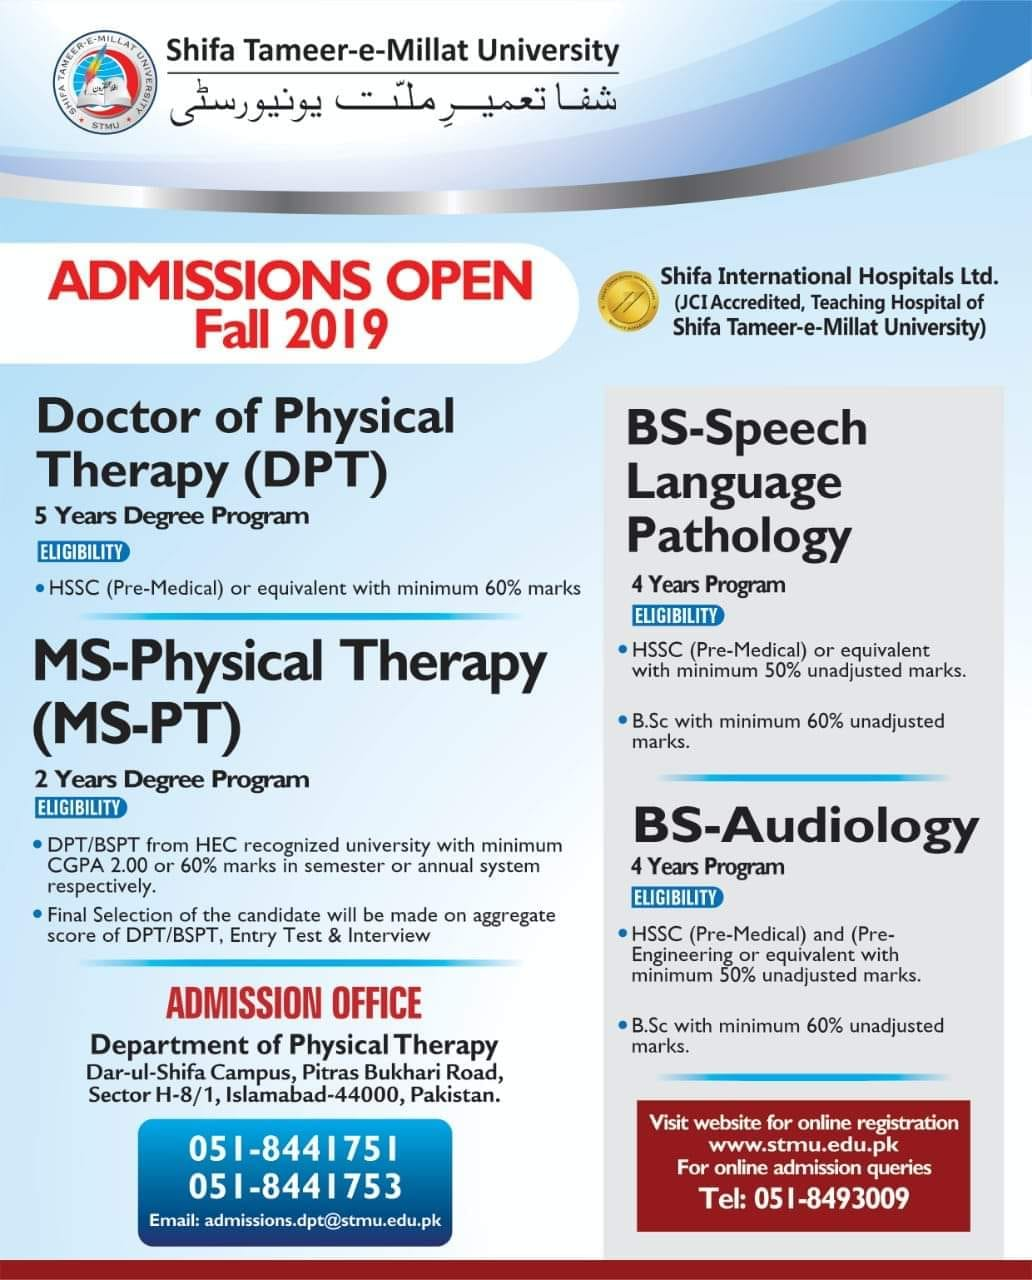 Shifa Tameer-e-Millat University DPT Admissions Open 2019-2020